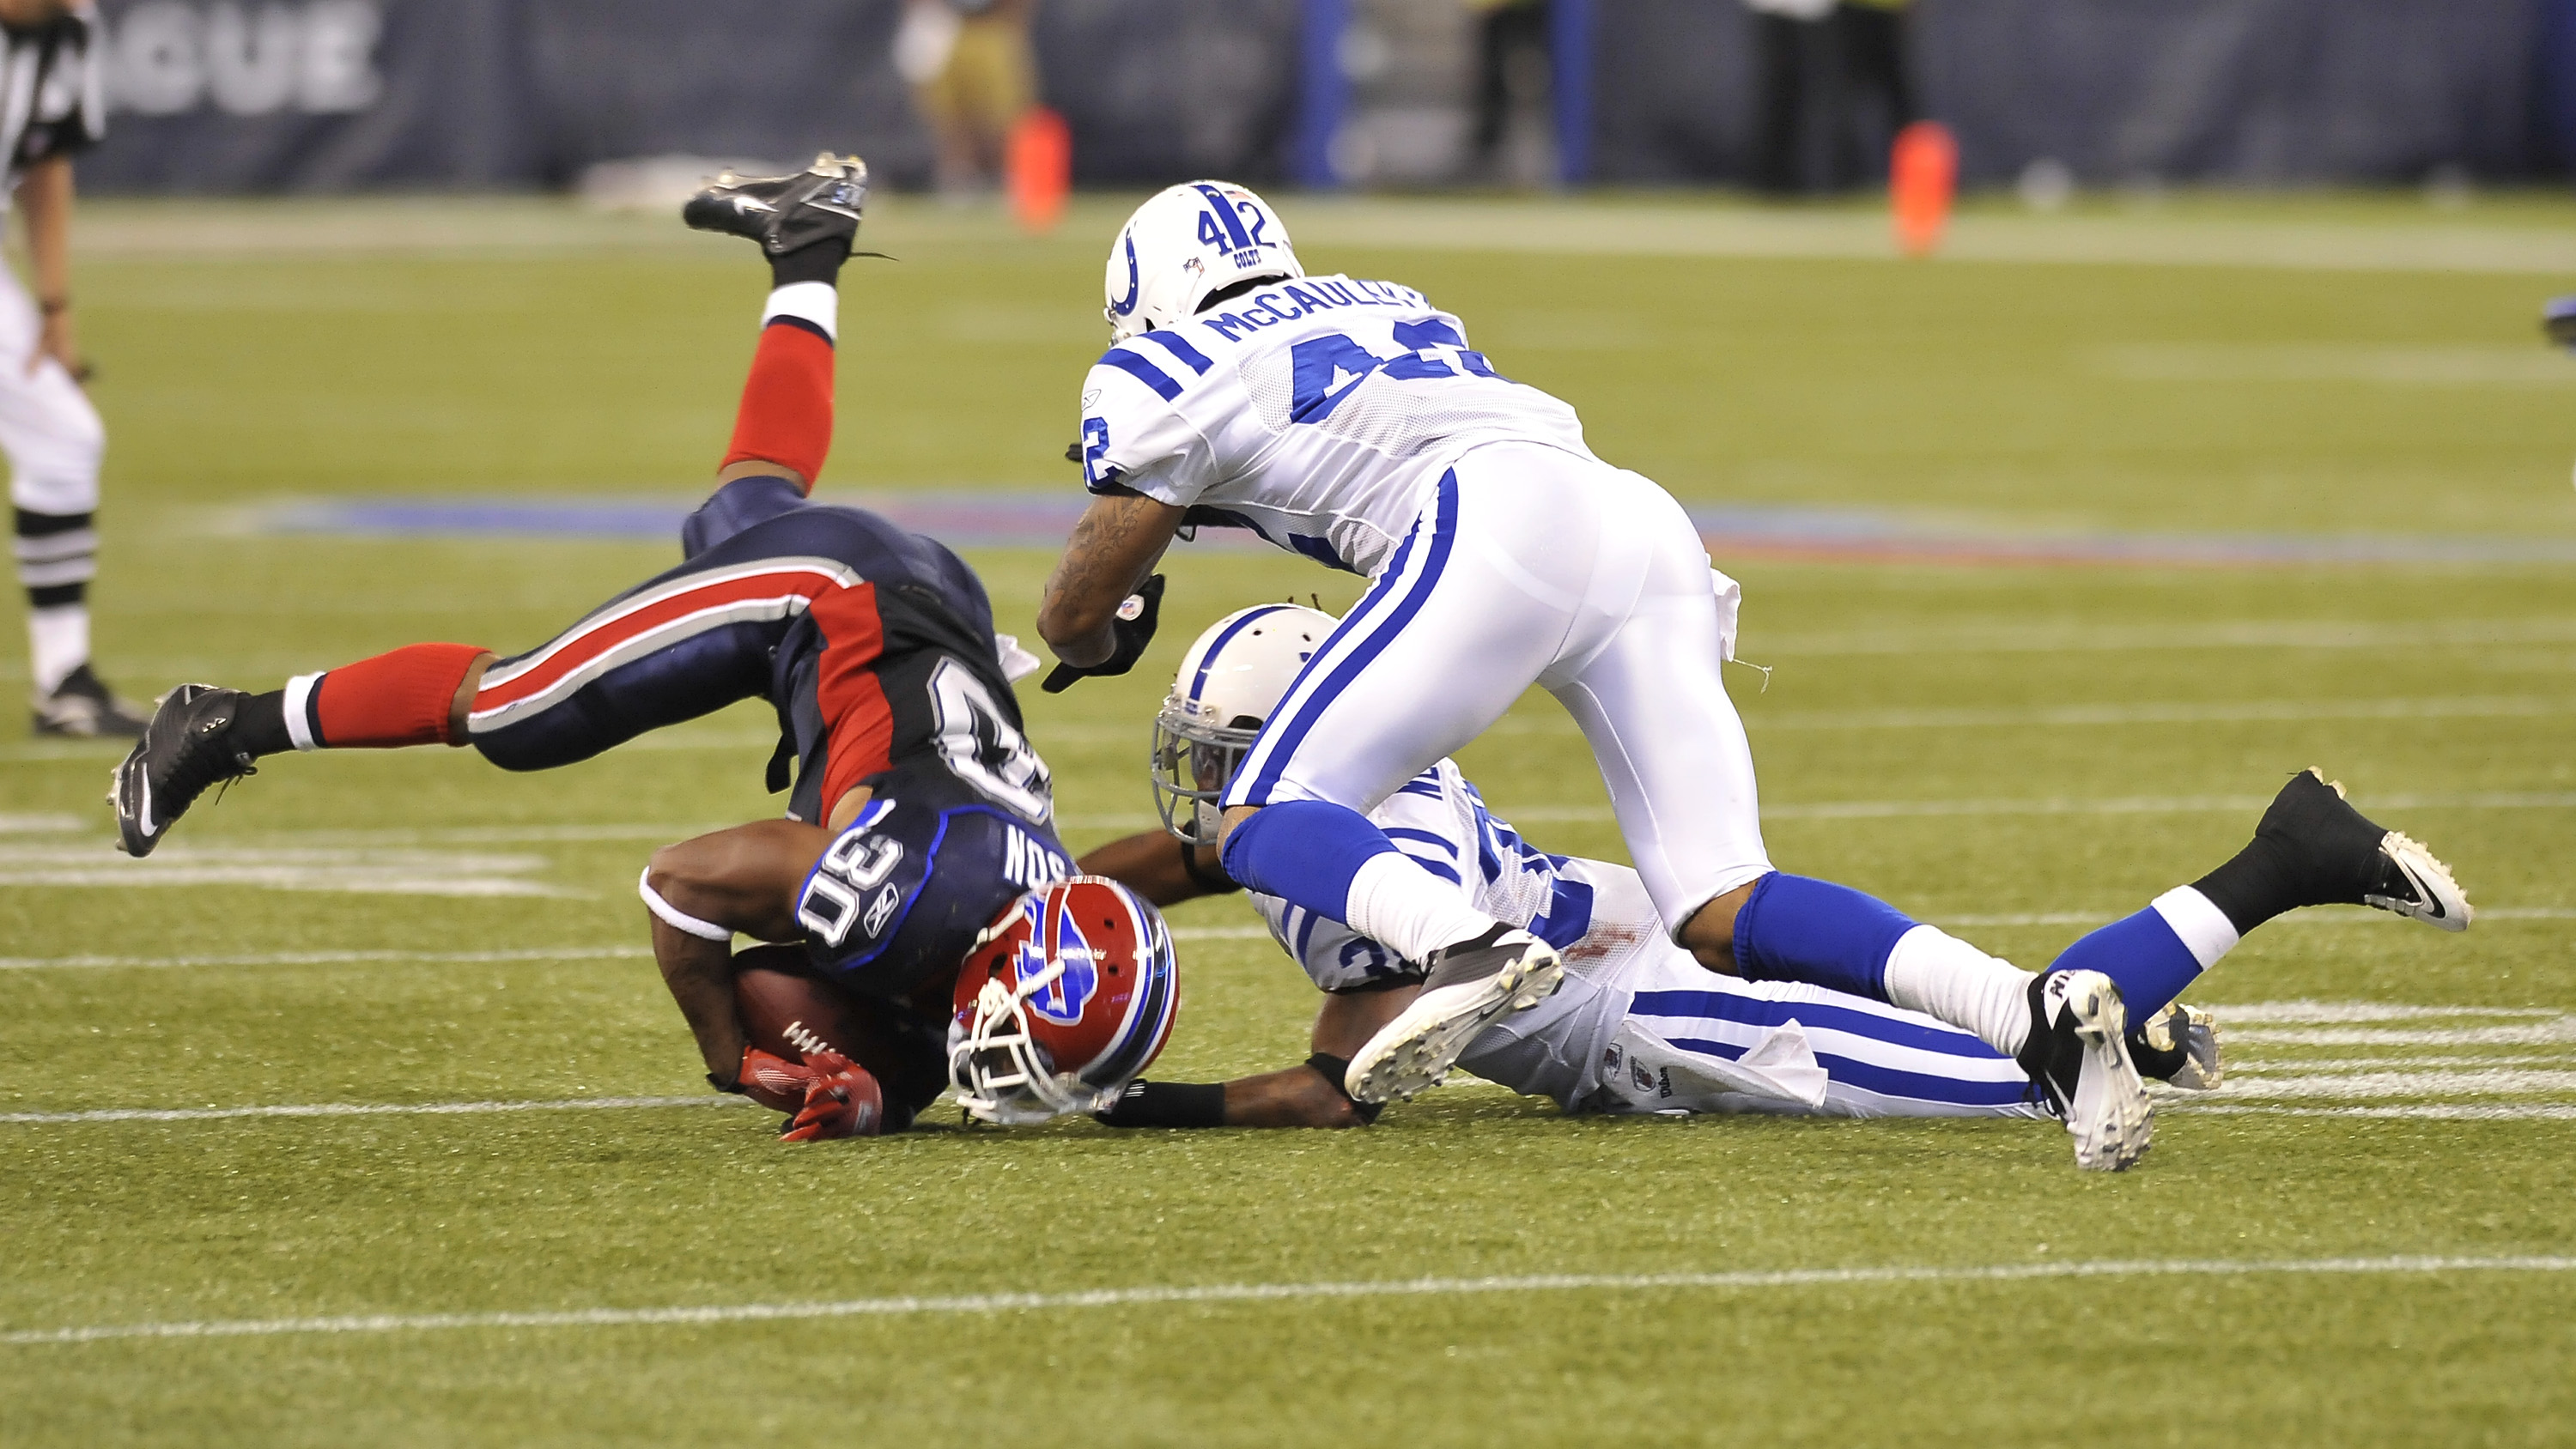 TORONTO - AUGUST 19:  Chad Simpson #30 of the Buffalo Bills is takled by Marcus McCauley #42 and Mike Newton #38 of the Indianapolis Colts during game action August 19, 2010 at the Rogers Centre in Toronto, Ontario, Canada. (Photo by Brad White/Getty Imag